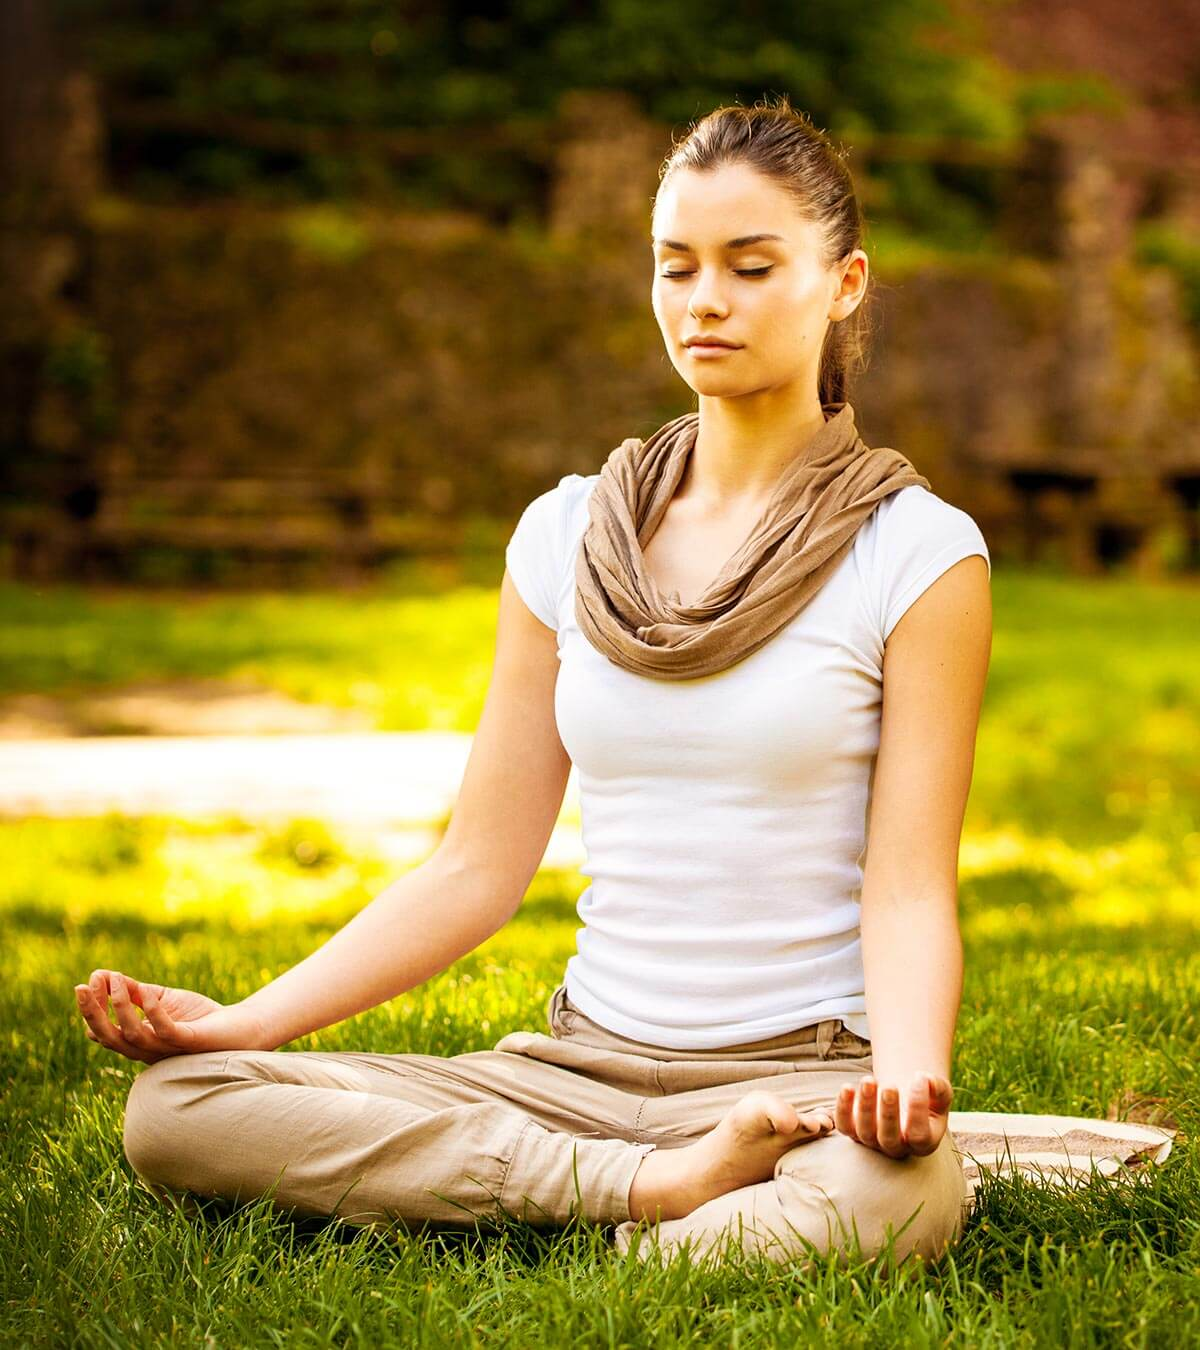 MEDITATION IN THE GRASS